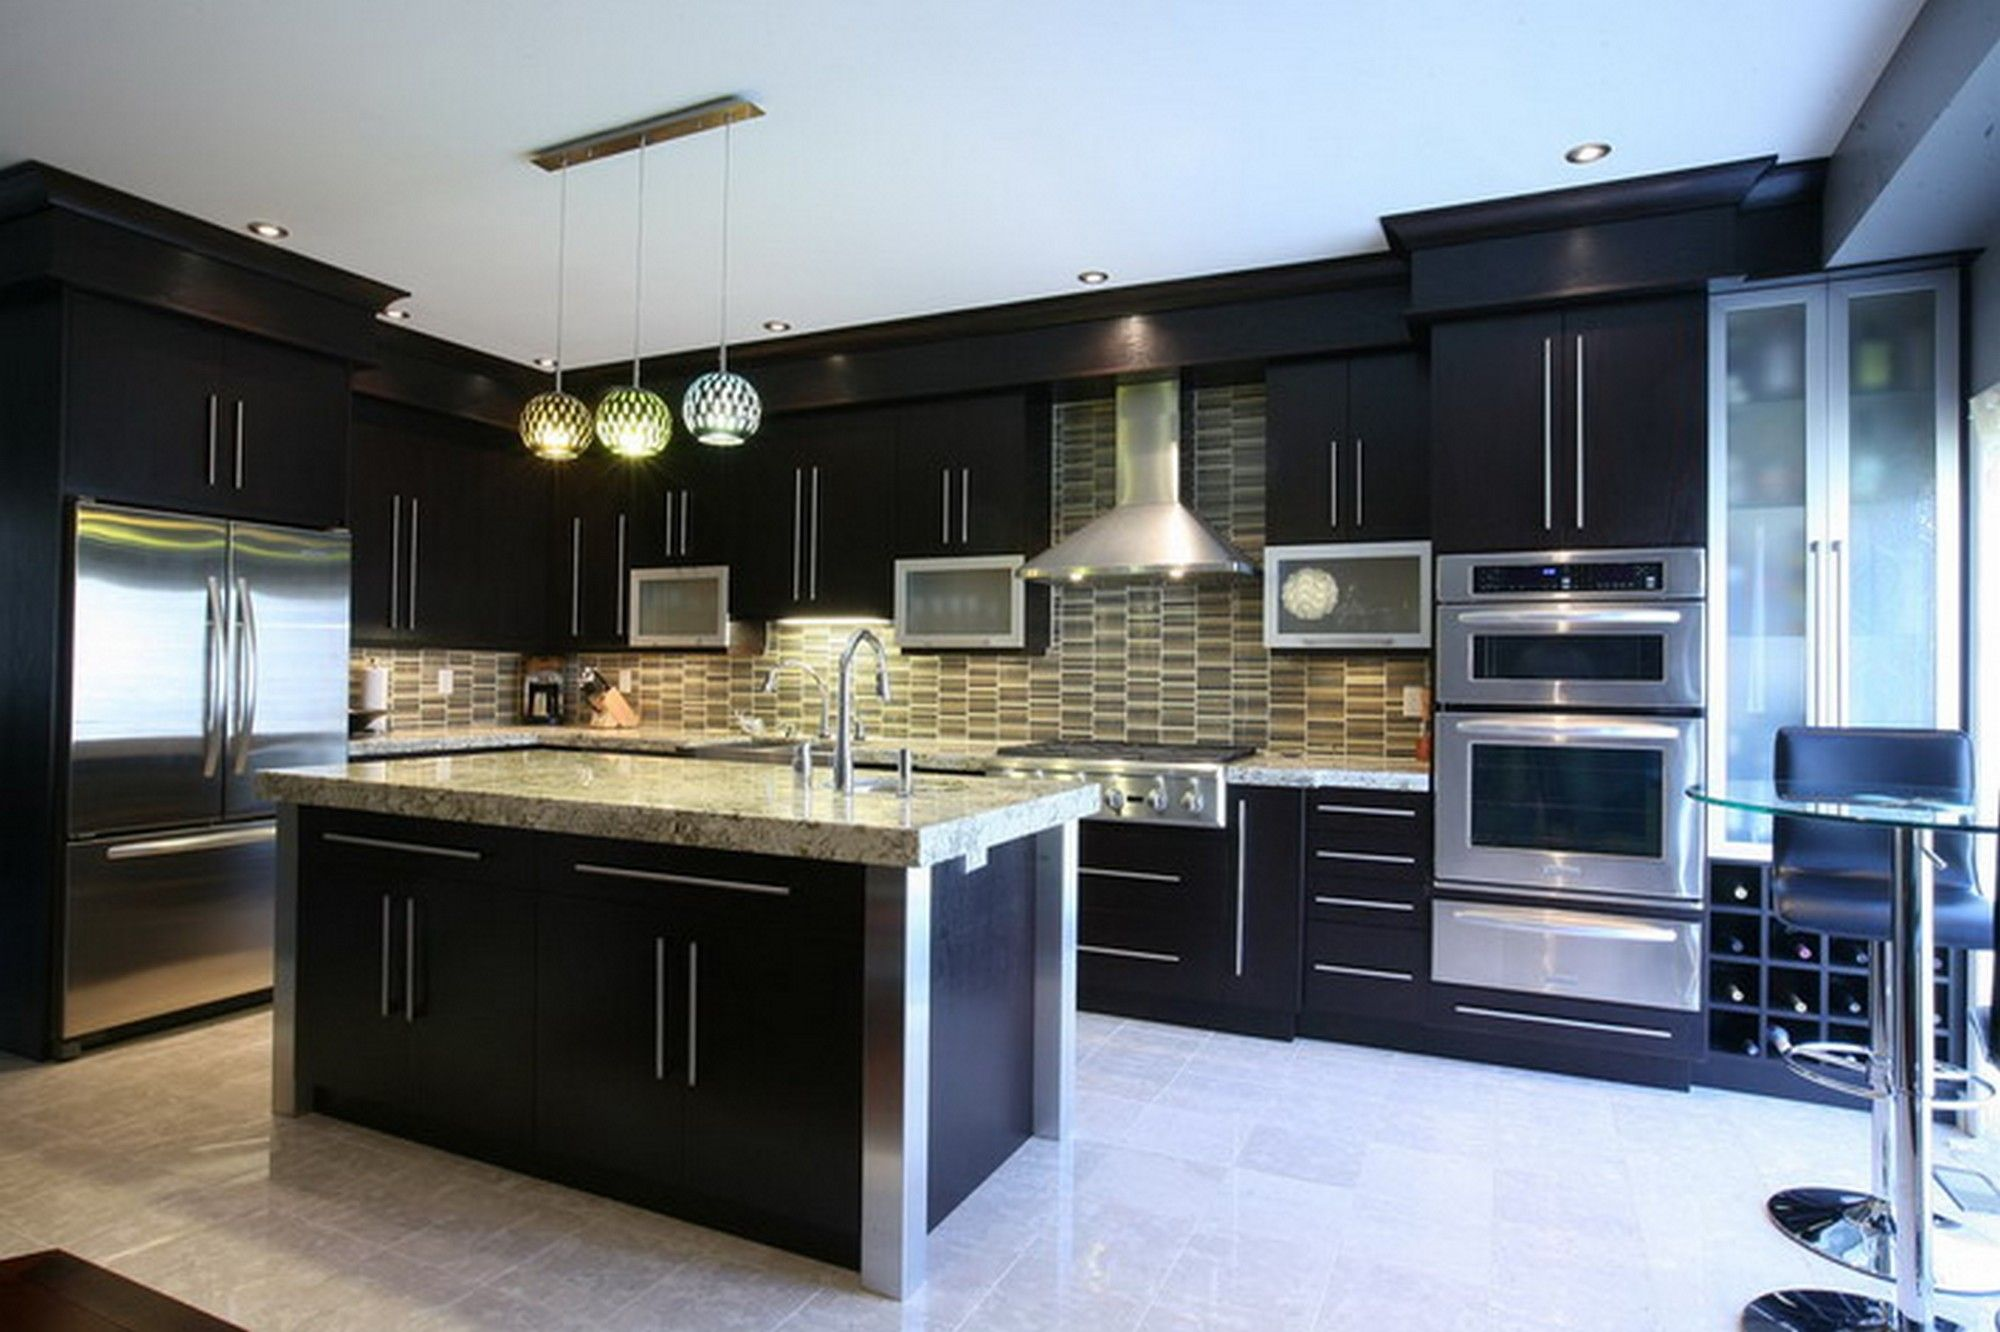 Kitchen Ideas Dark Cabinets Modern kitchen, white springs granite with dark cabinets and unique